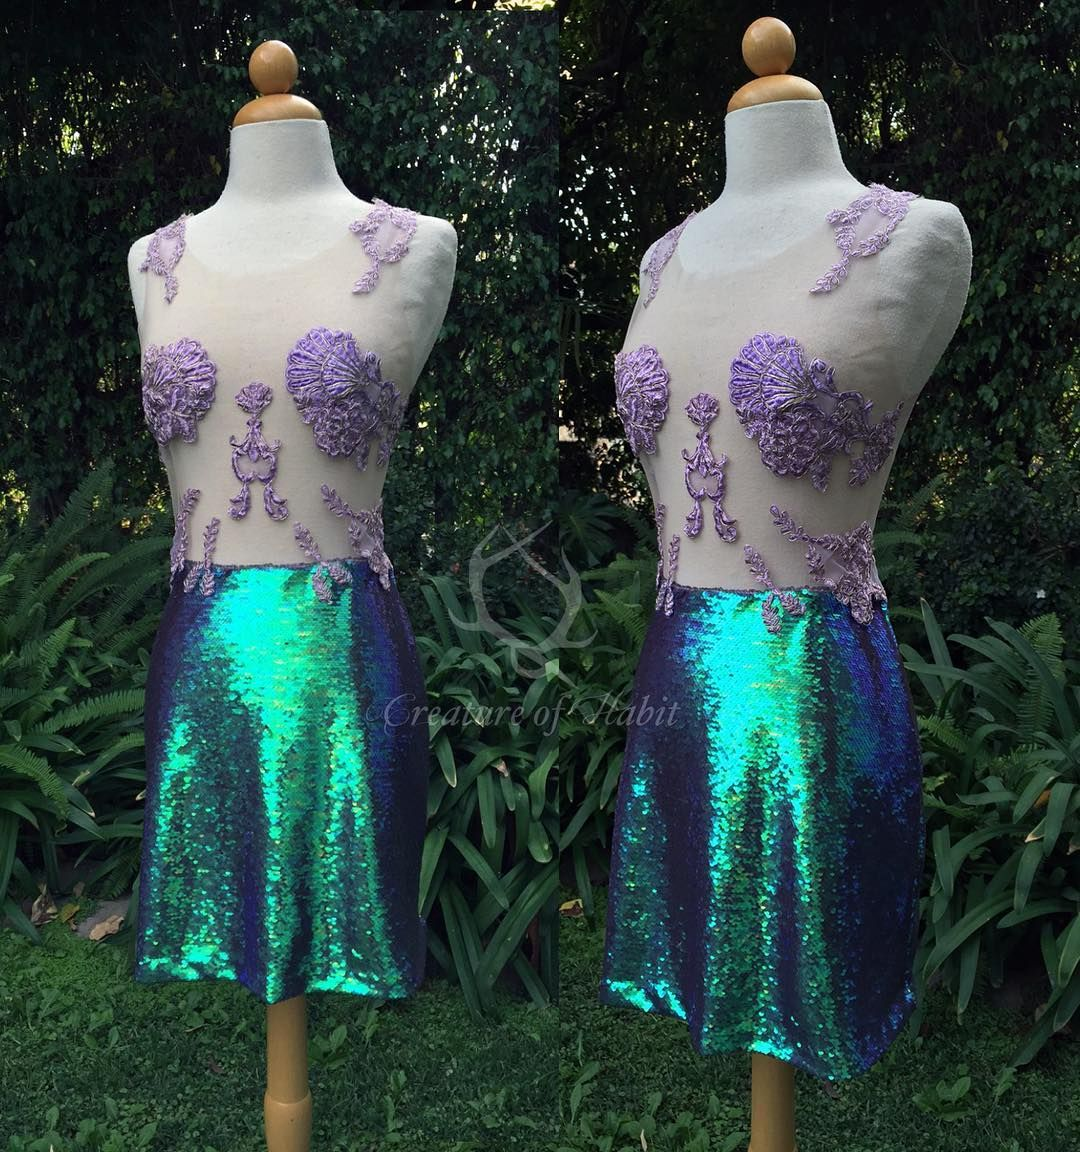 """A slightly different version of my Ariel inspired dress for lovely @luckyyyyyyy 💕 Featuring color shifting sequins, hand cut and hand dyed lace. All hand sewn to a nude tulle to create the illusion of the lace """"floating"""" on the body. So much fun!! Email me to order your own made to measure design - creatureofhabit.info@gmail.com"""